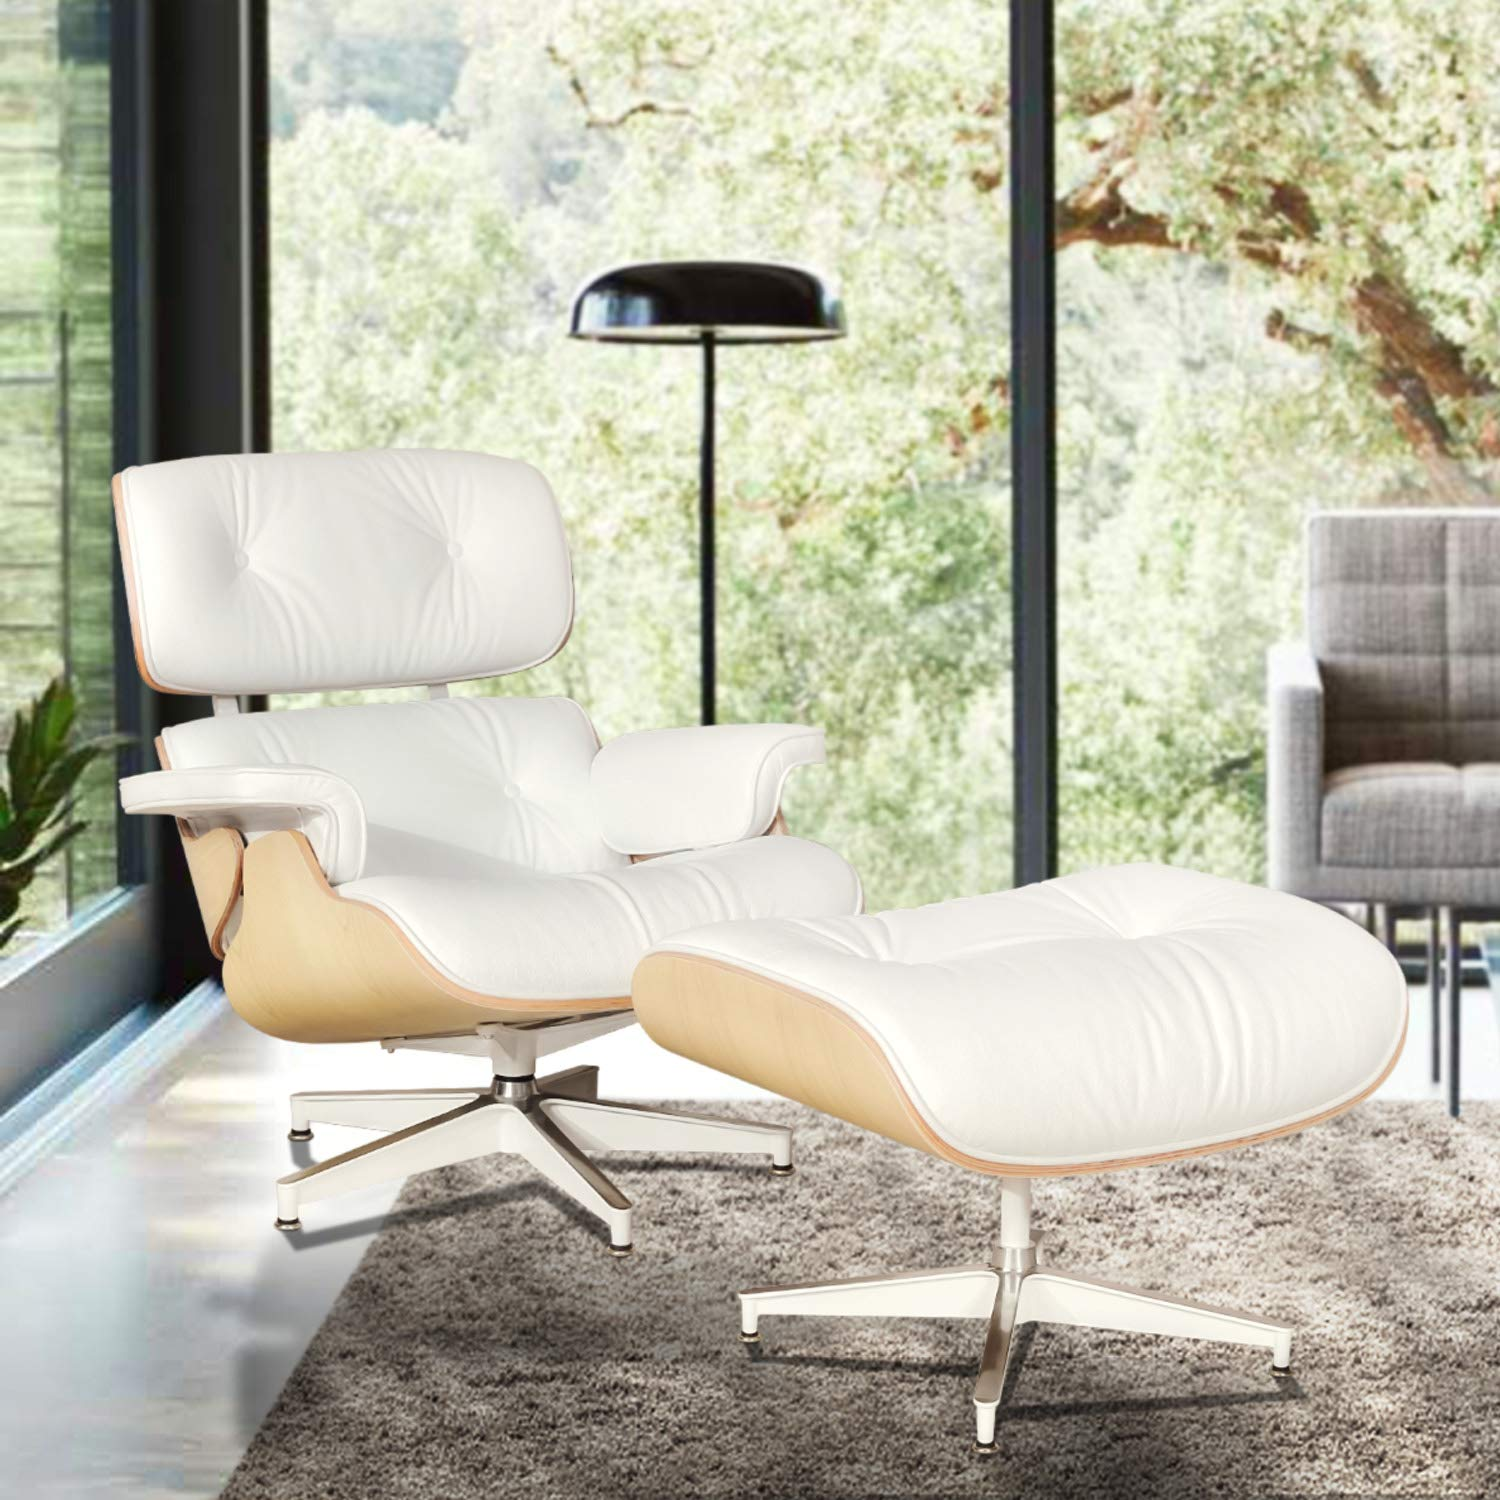 Pleasing Mid Century Modern Lounge Chair With Ottoman Mid Century Recliner Chair High Grade Leather White Solid Wood Eames Lounge Chair Replica White Ash Caraccident5 Cool Chair Designs And Ideas Caraccident5Info